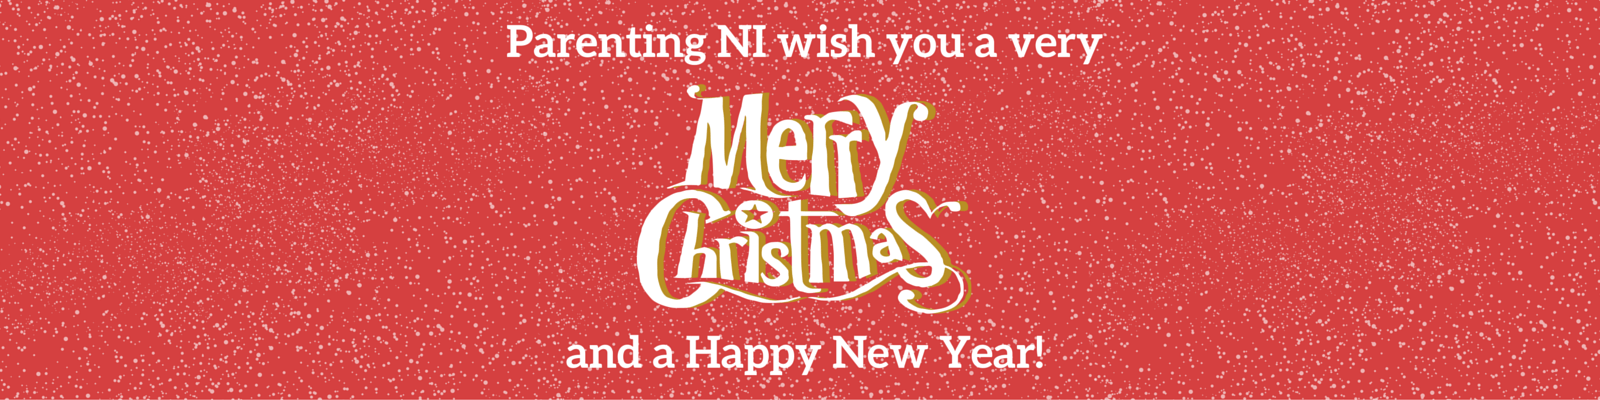 Merry Christmas from Parenting NI